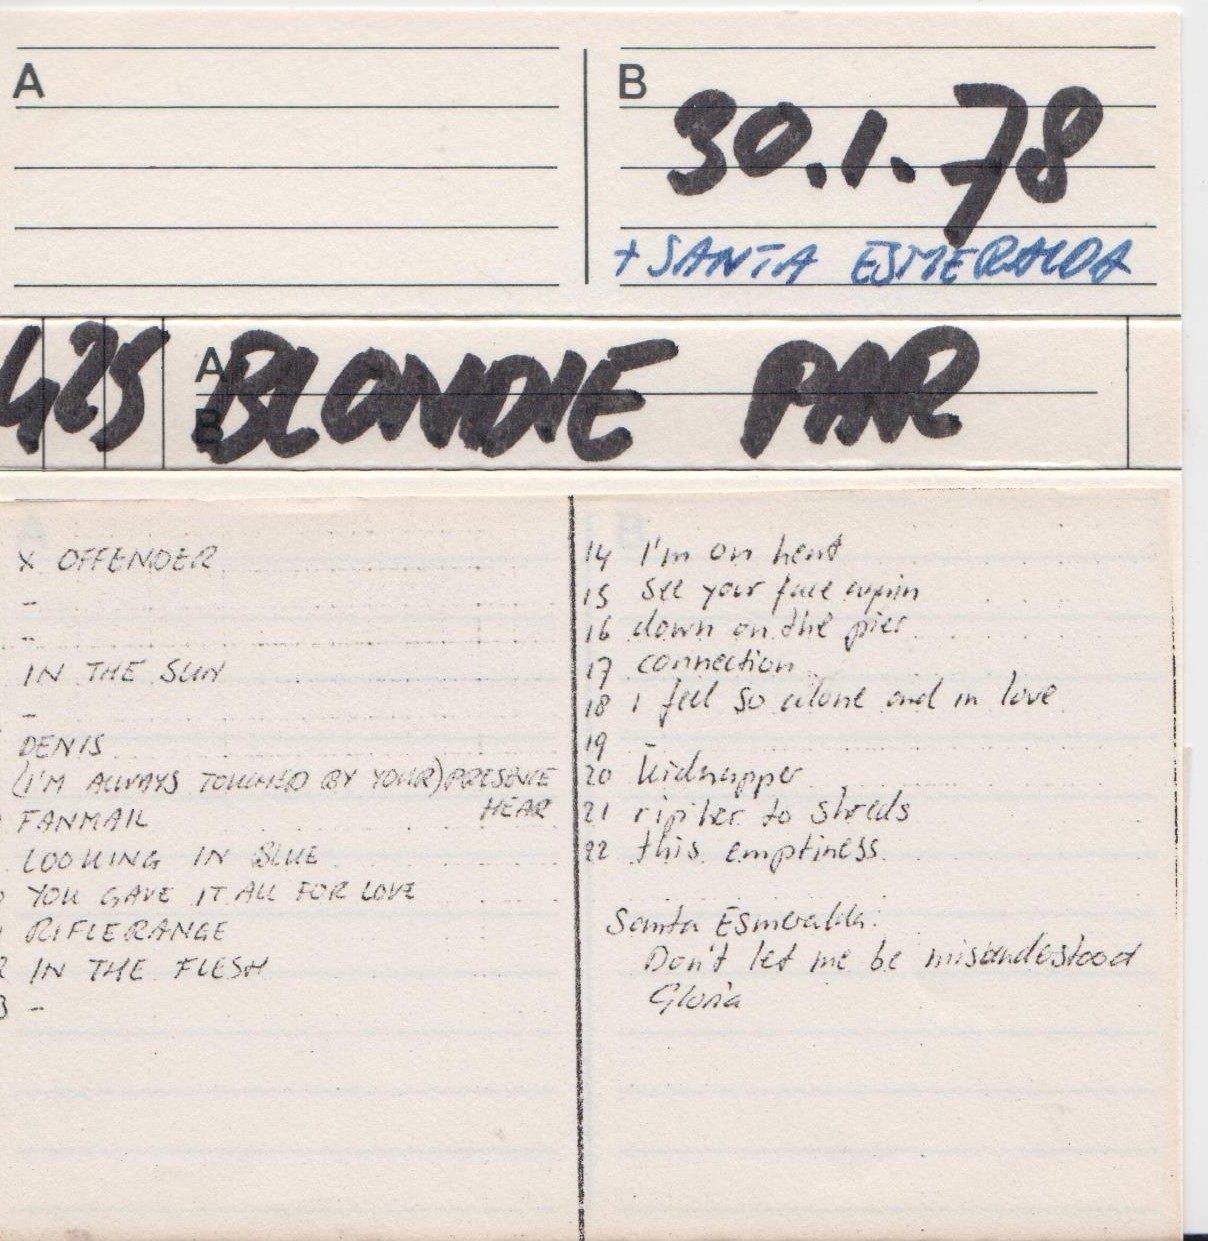 blondie,paradiso amsterdam 30 1 78 flac - Guitars101 - Guitar Forums